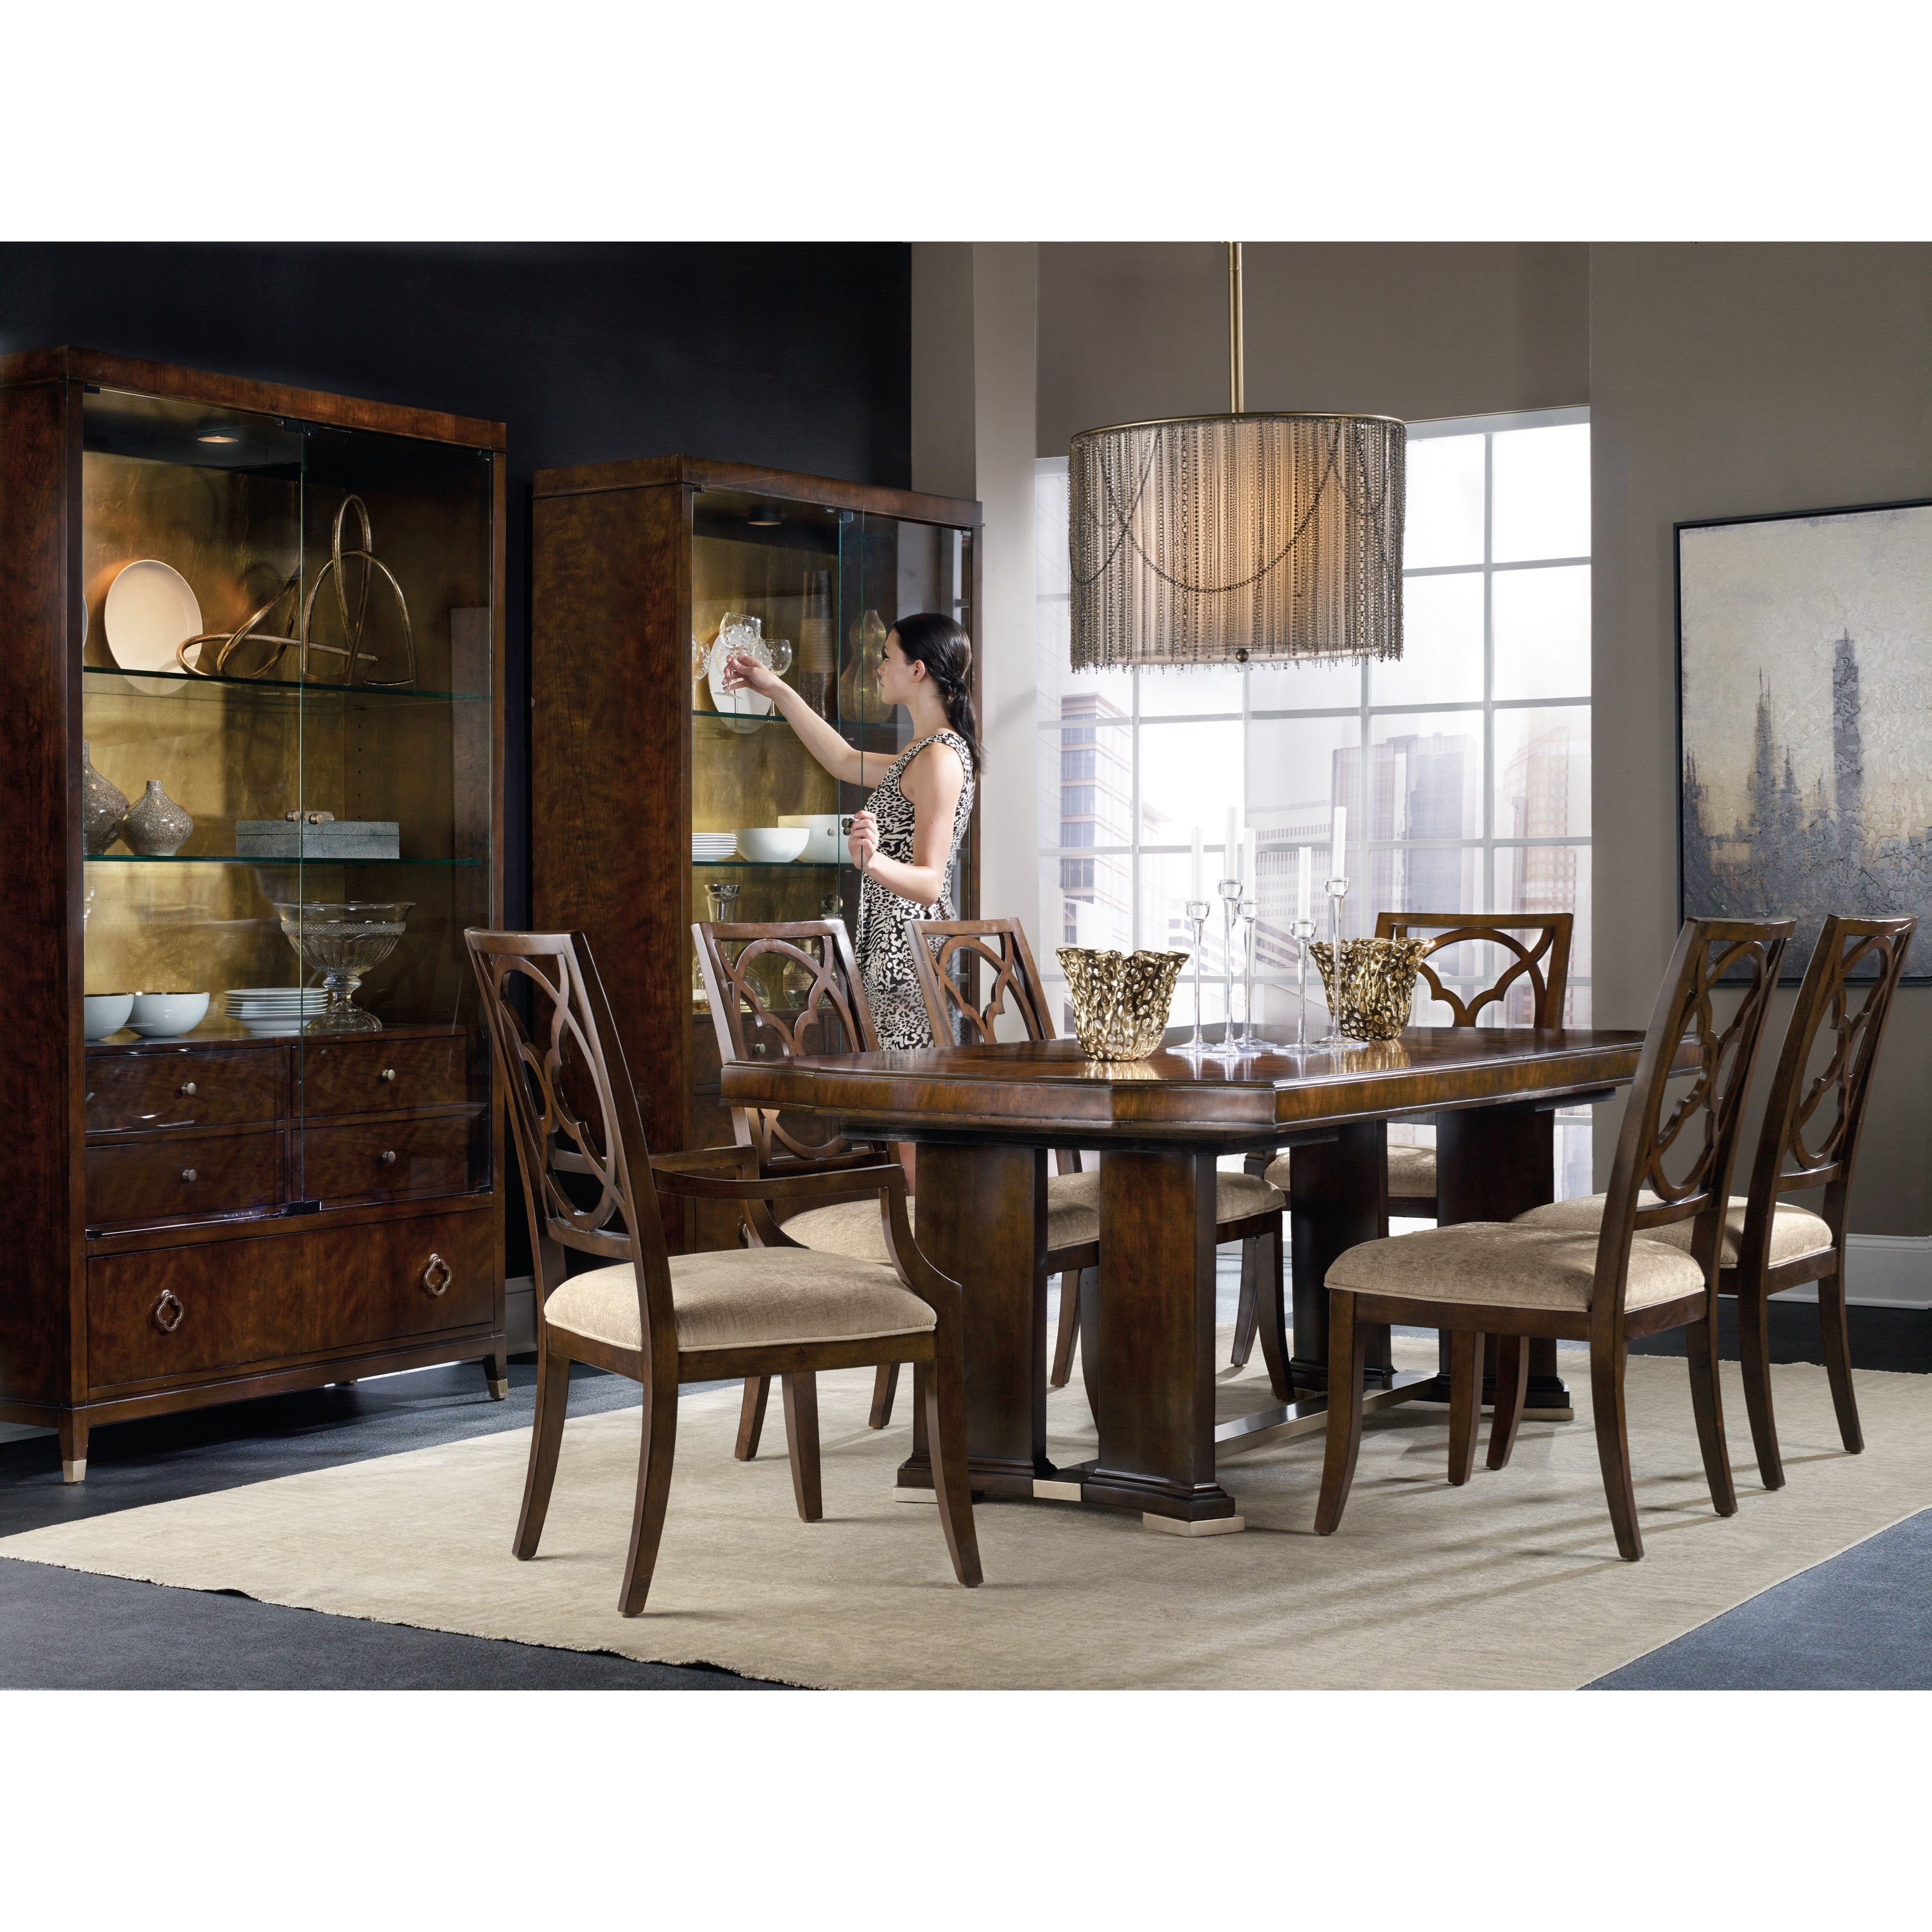 Hooker Furniture Skyline Dining Room Group - Item Number: 5336 Dining Room Group 1